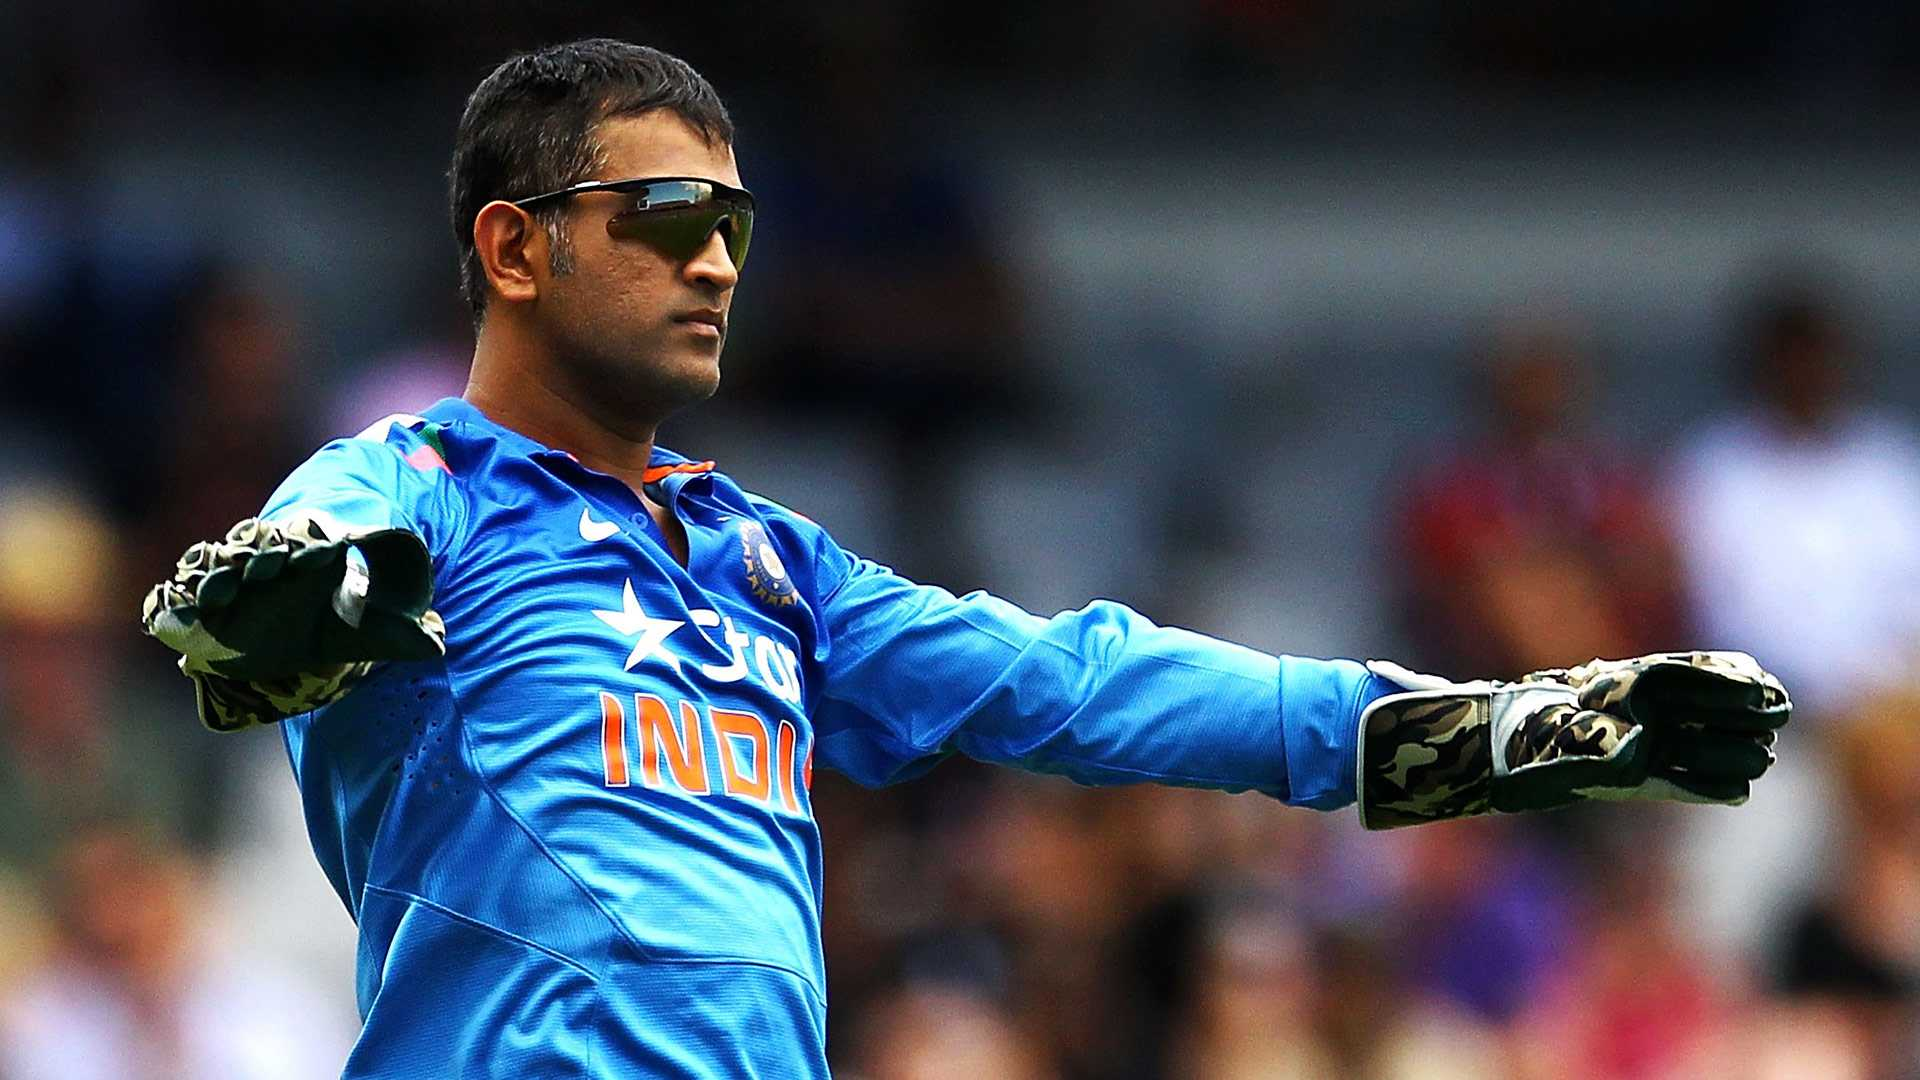 Ms Dhoni Wallpapers Wallpaper Cave